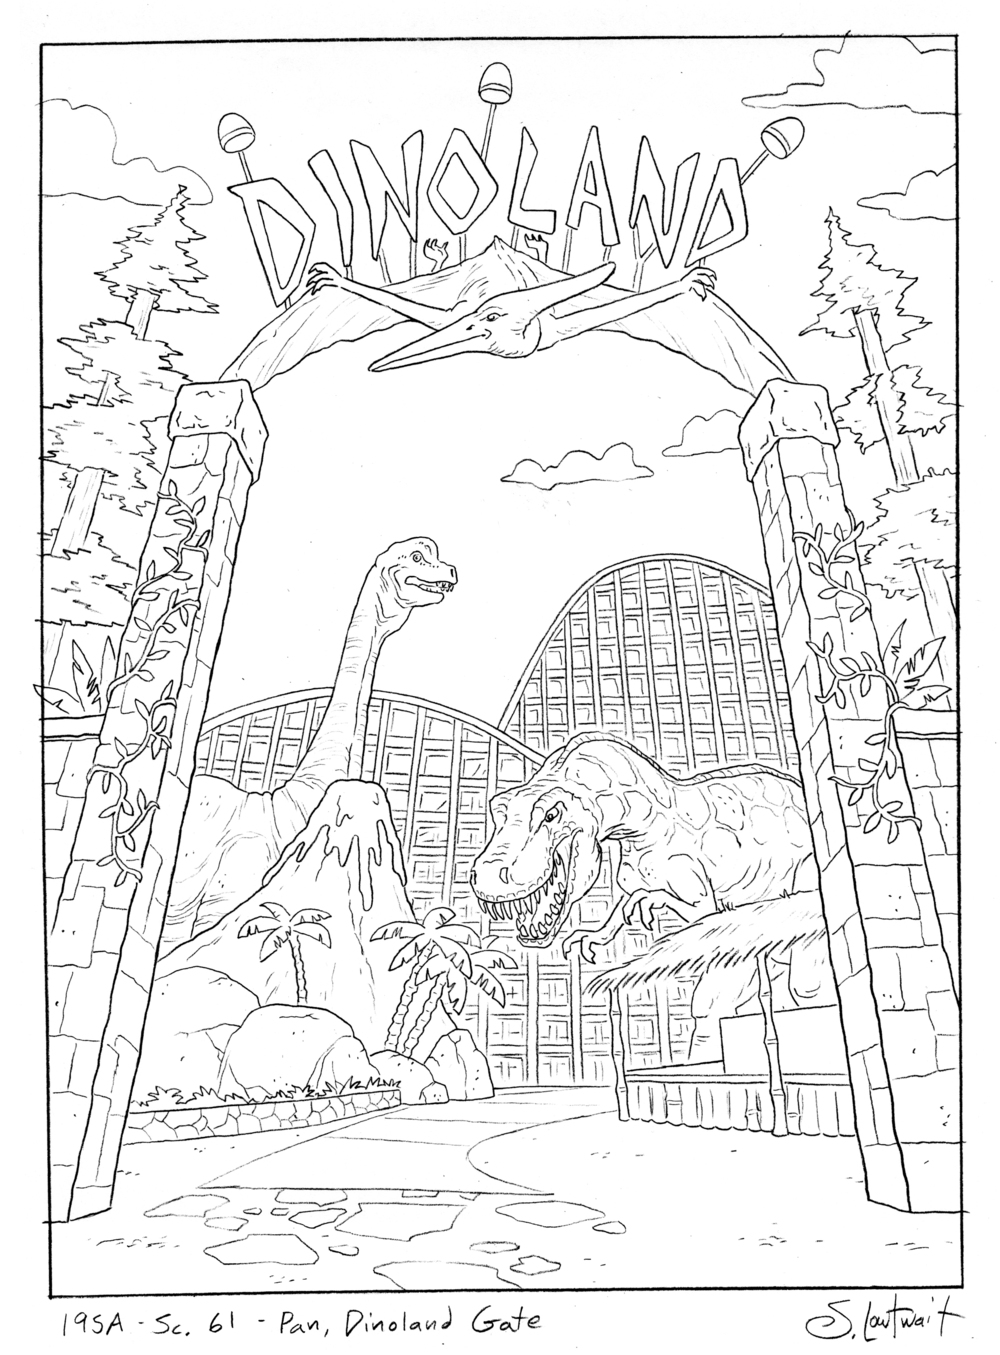 Dinoland. Dinosaurs = lots of fun to draw! You can't go wrong with a t-rex in a kid's TV show.